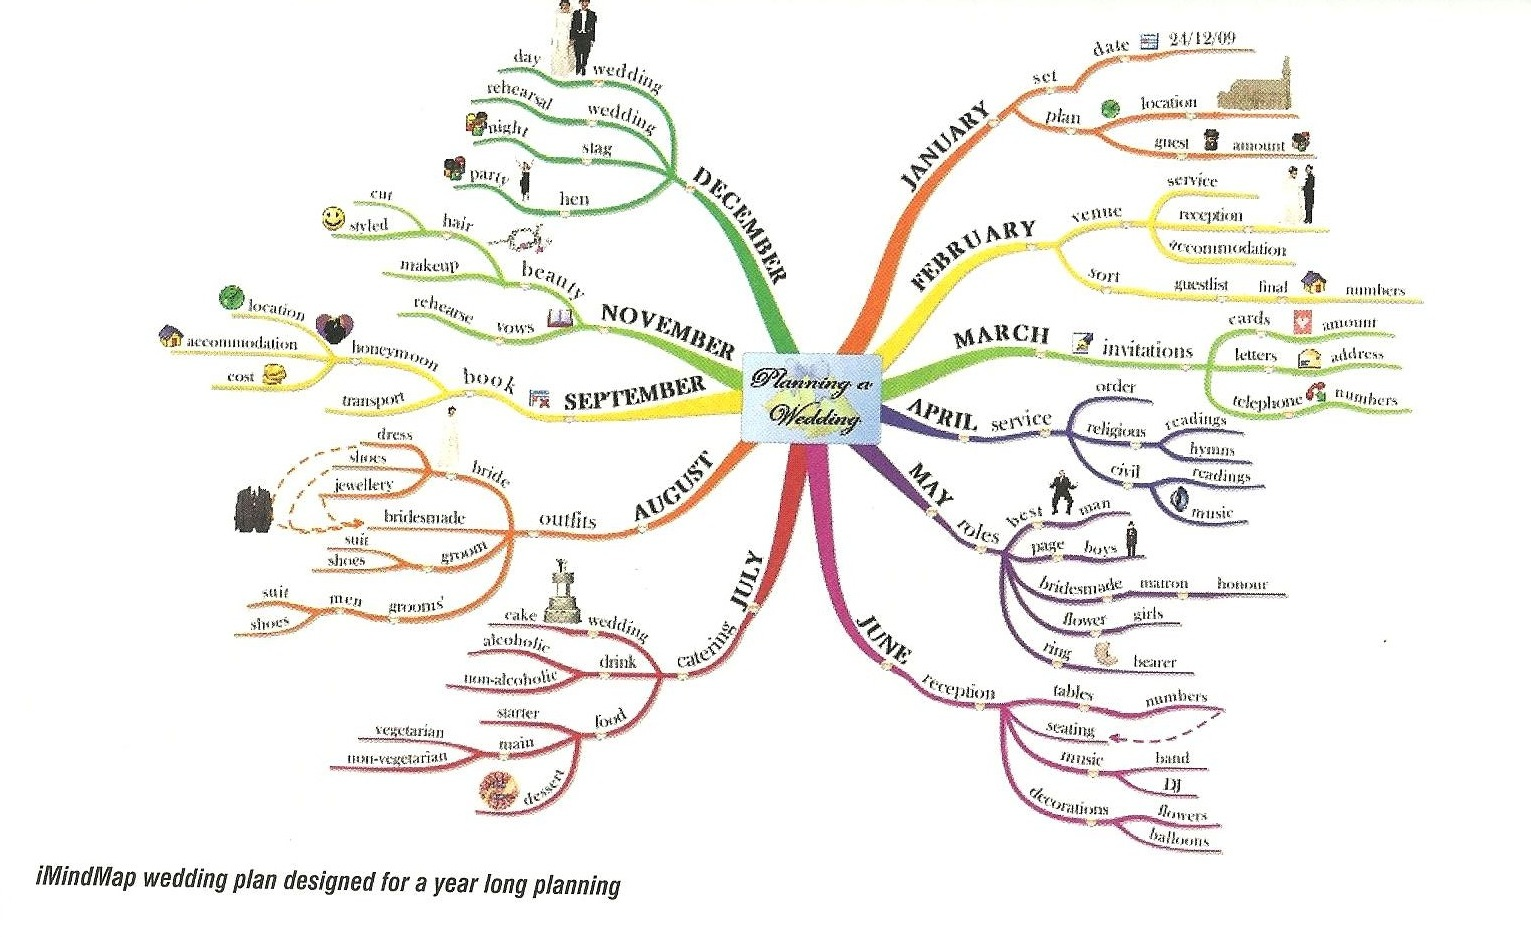 Fashion cookie interesting mind maps i never really put much though into mind maps i normally just do some sort of spider diagram but these mind maps are creative and i believe show your line ccuart Images